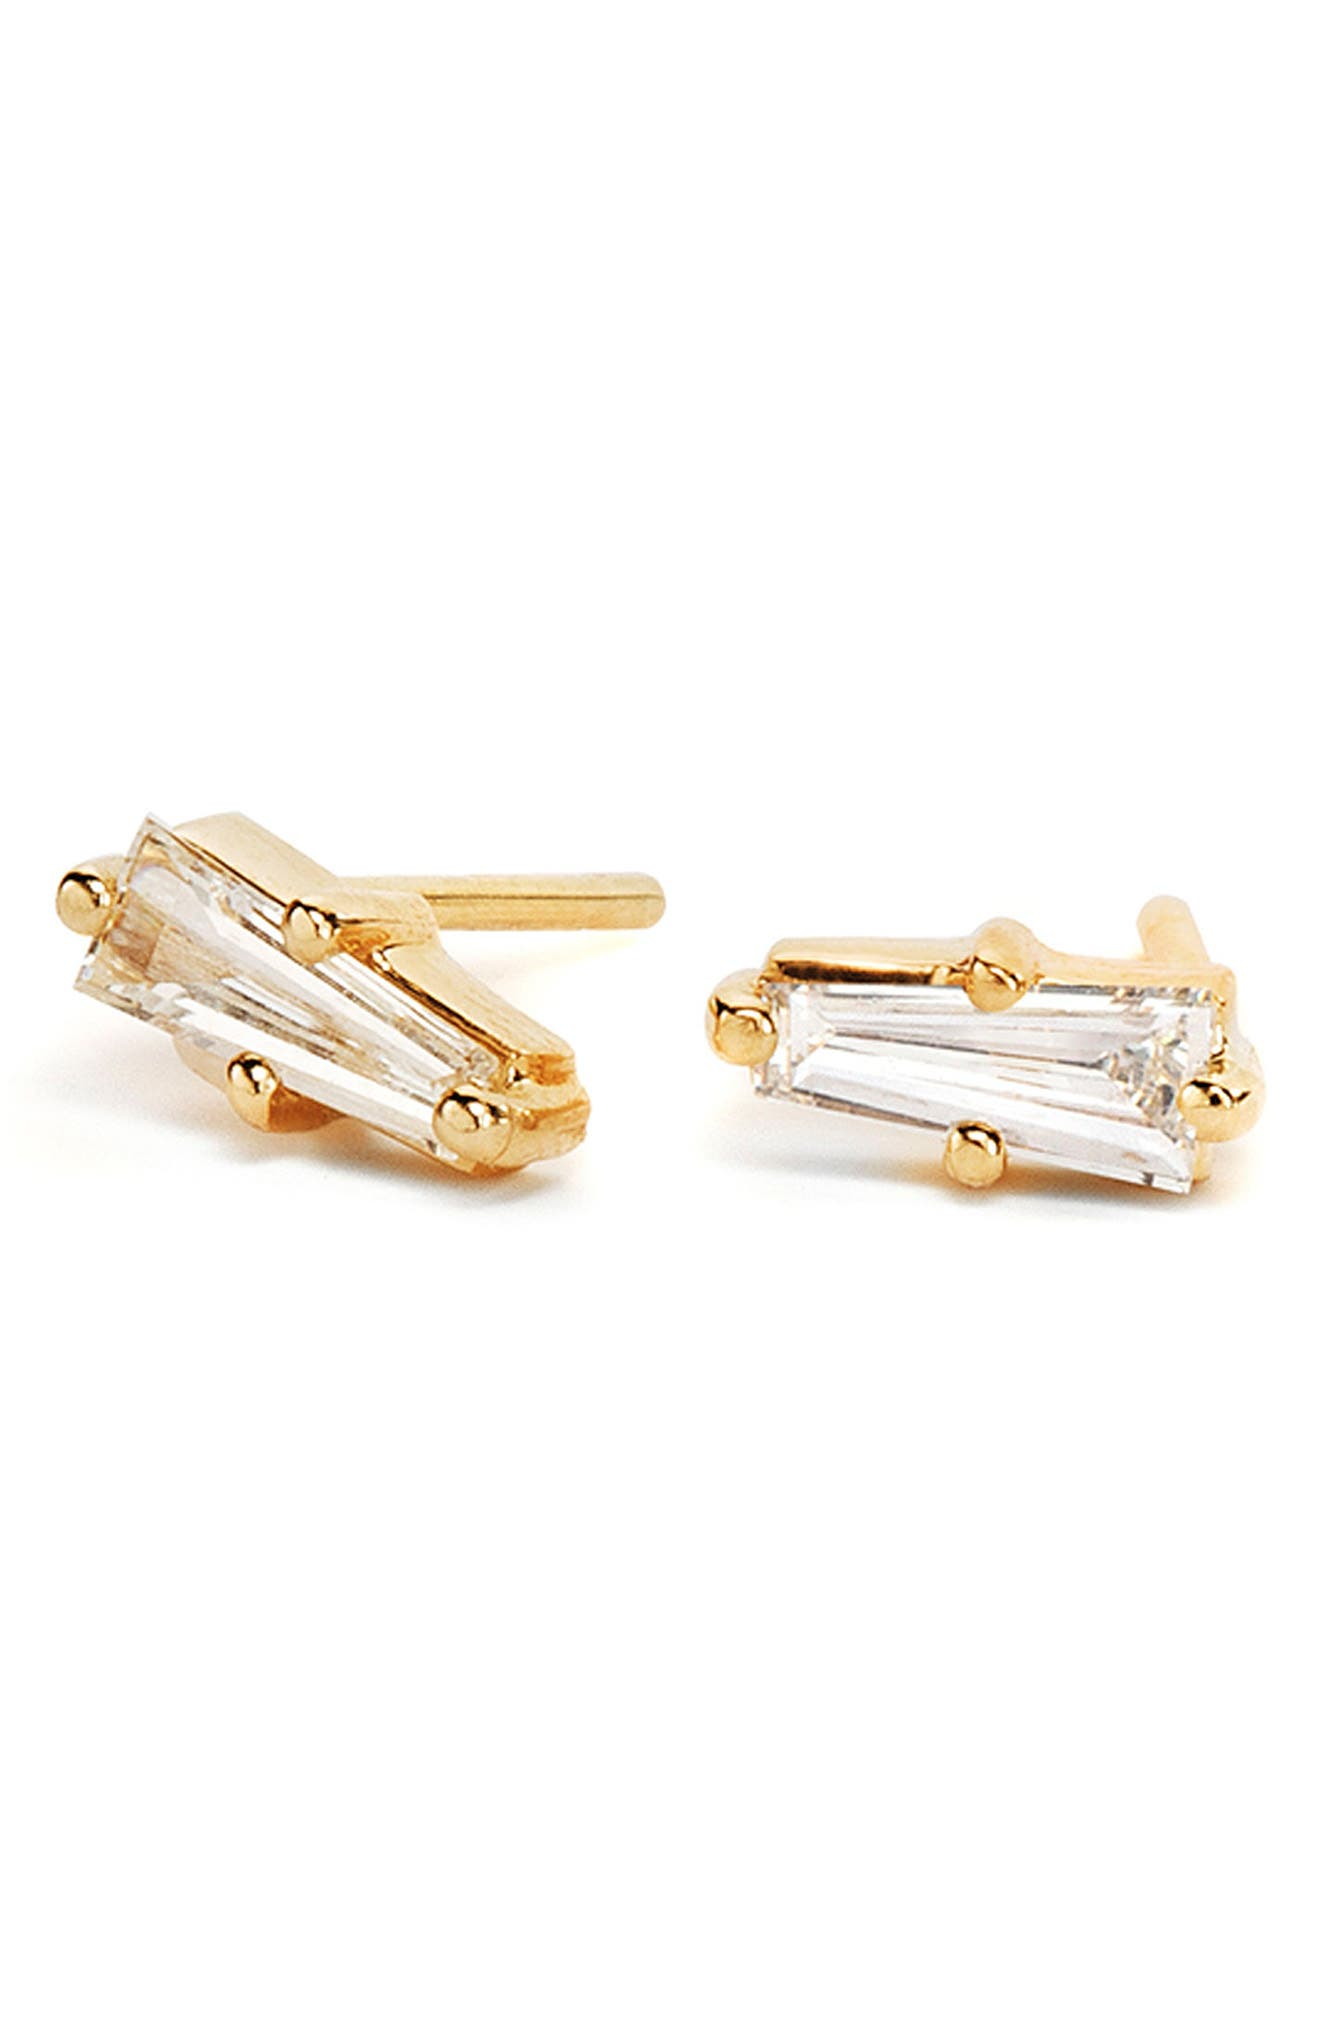 NORA KOGAN Paloma Triangle Diamond Stud Earrings in Yellow Gold